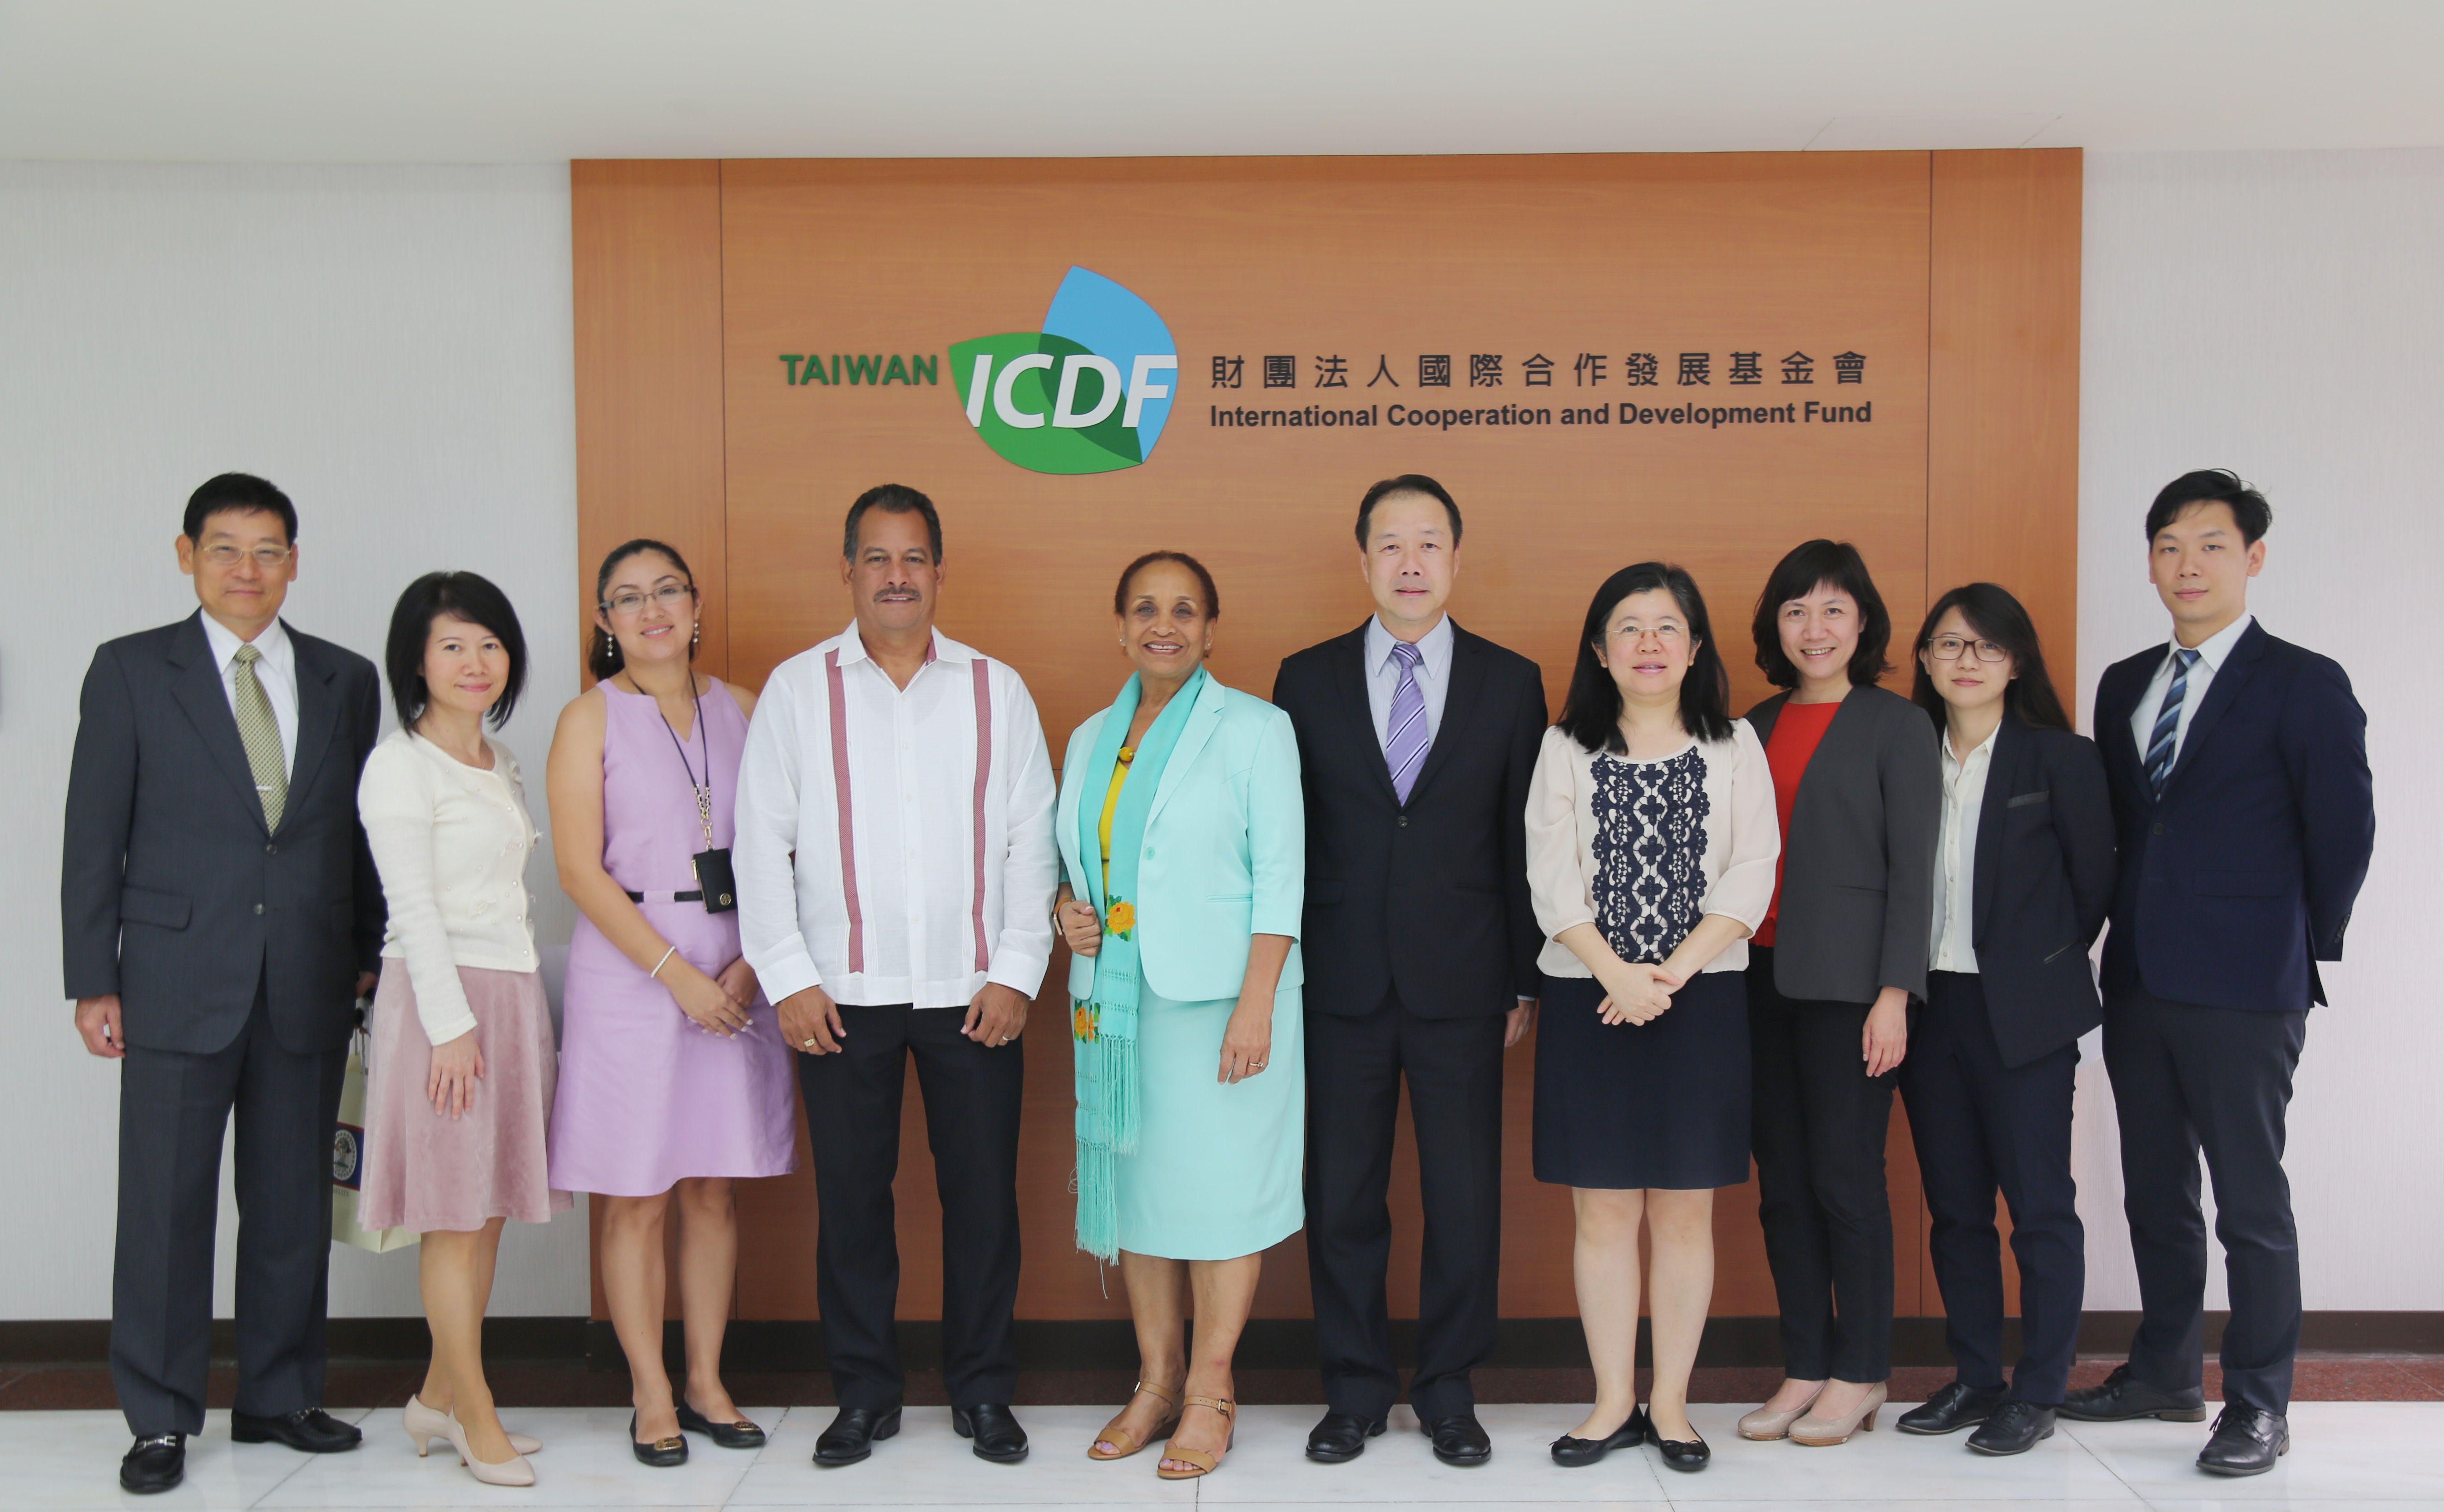 Belize Minister of Health Visits the TaiwanICDF